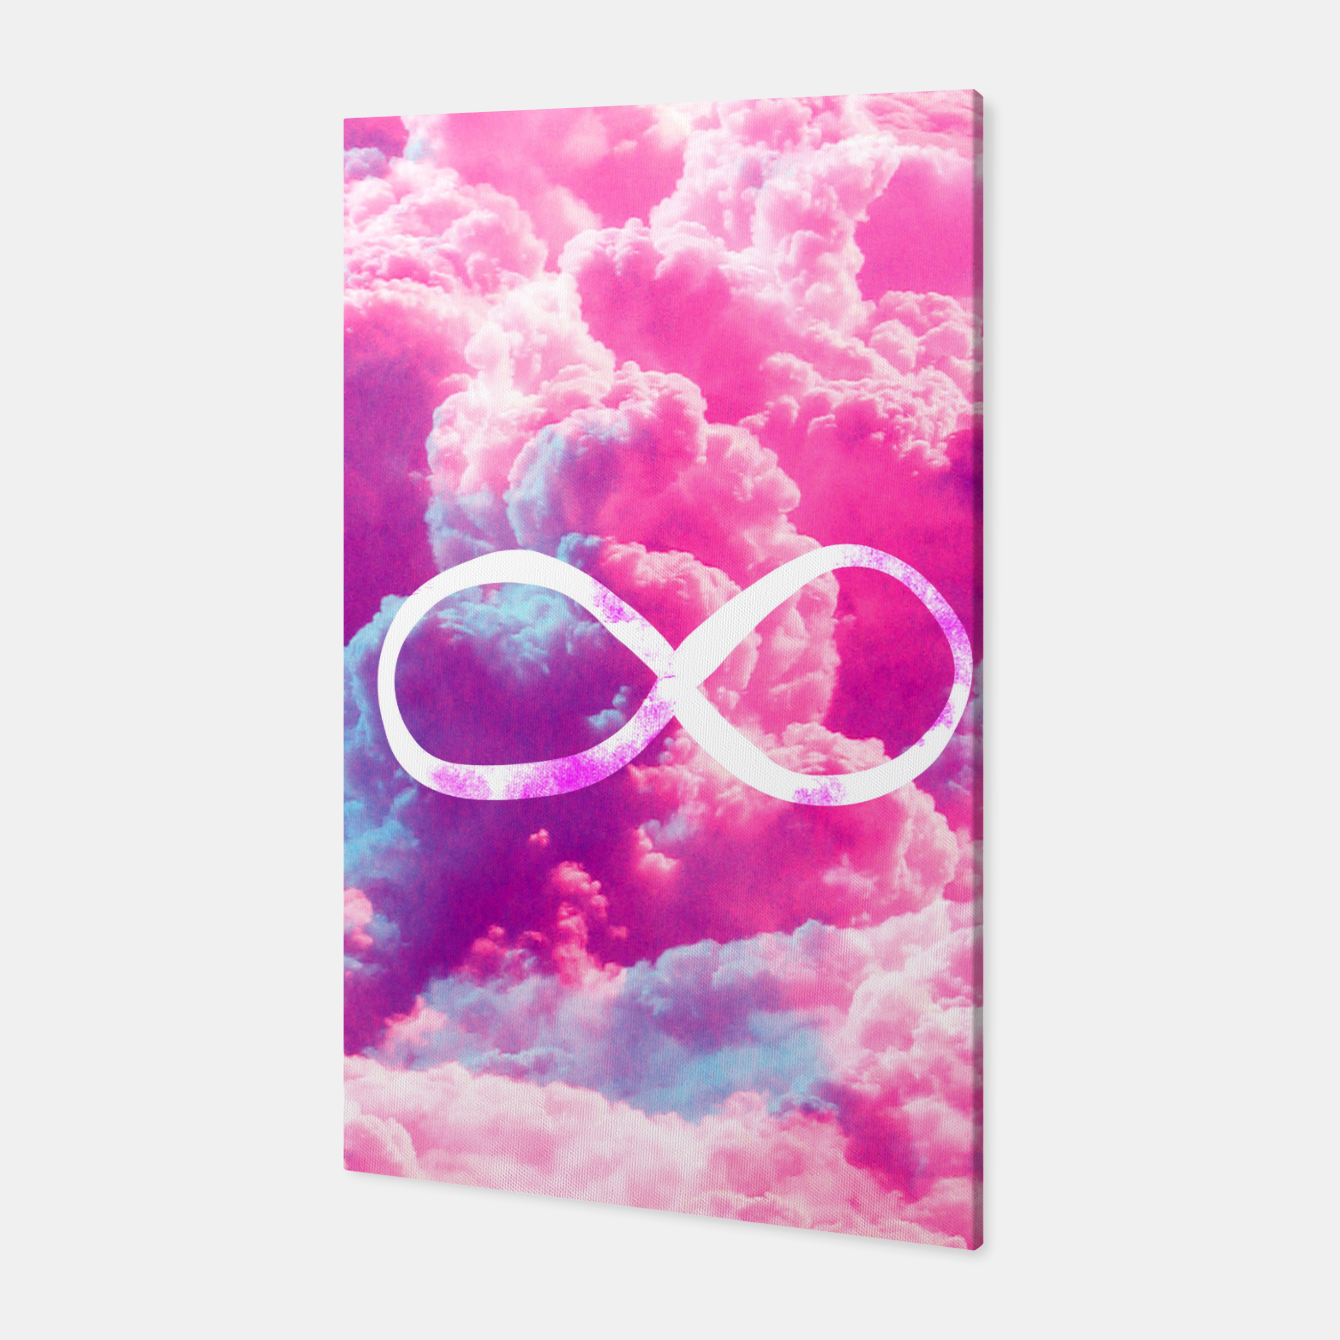 Girly infinity symbol bright pink clouds sky canvas live heroes image of girly infinity symbol bright pink clouds sky canvas live heroes buycottarizona Image collections